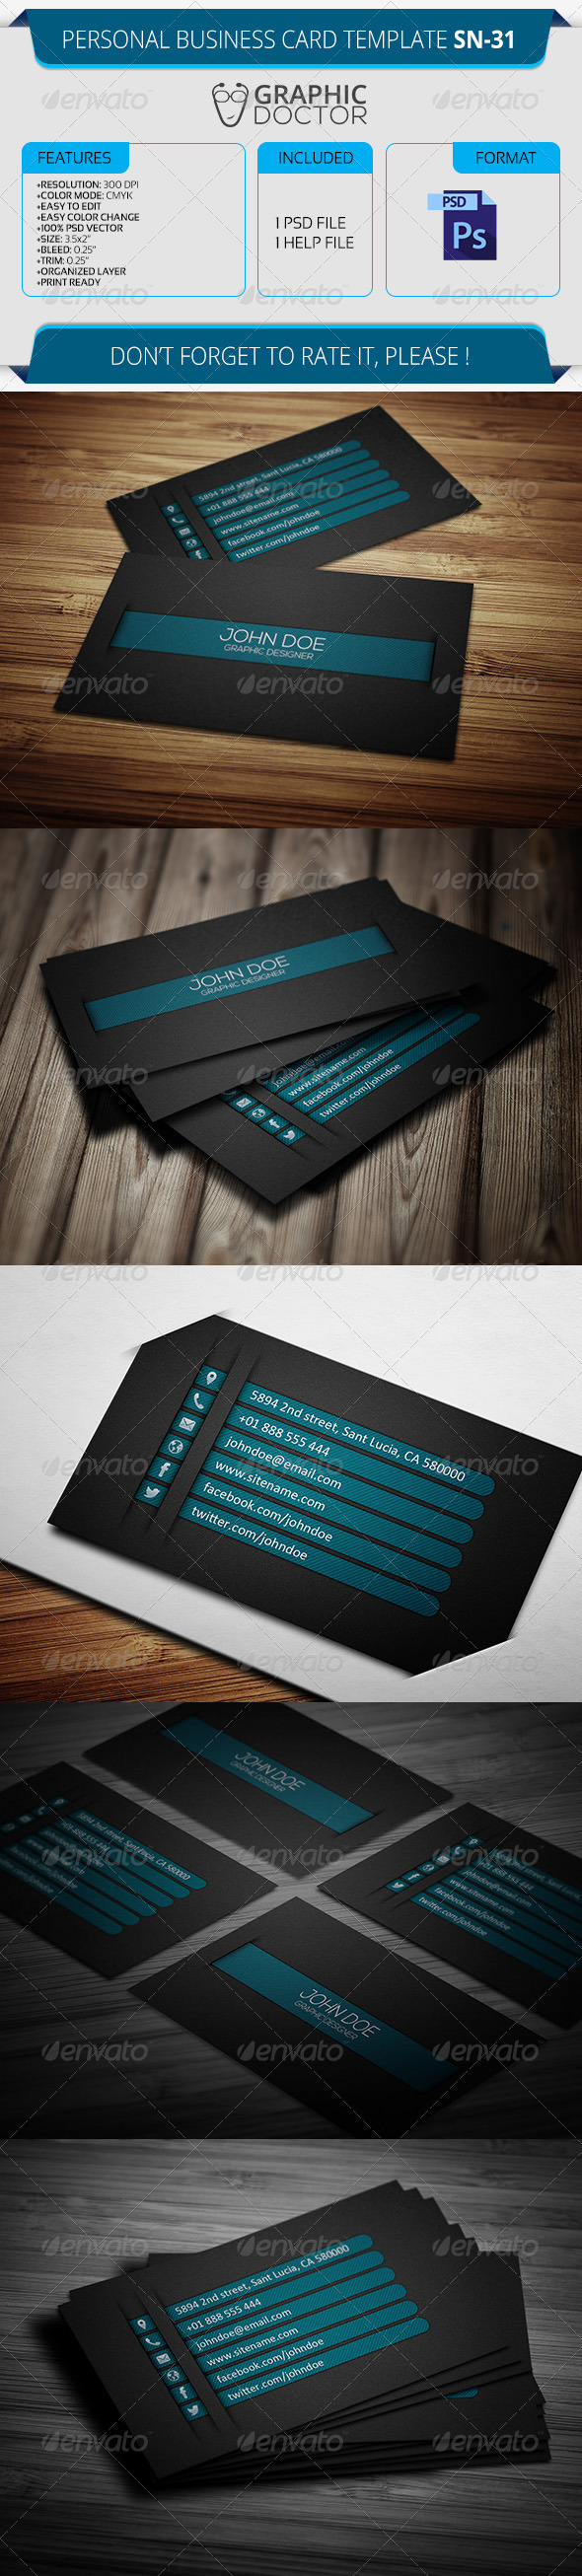 Personal Business Card Template SN-31